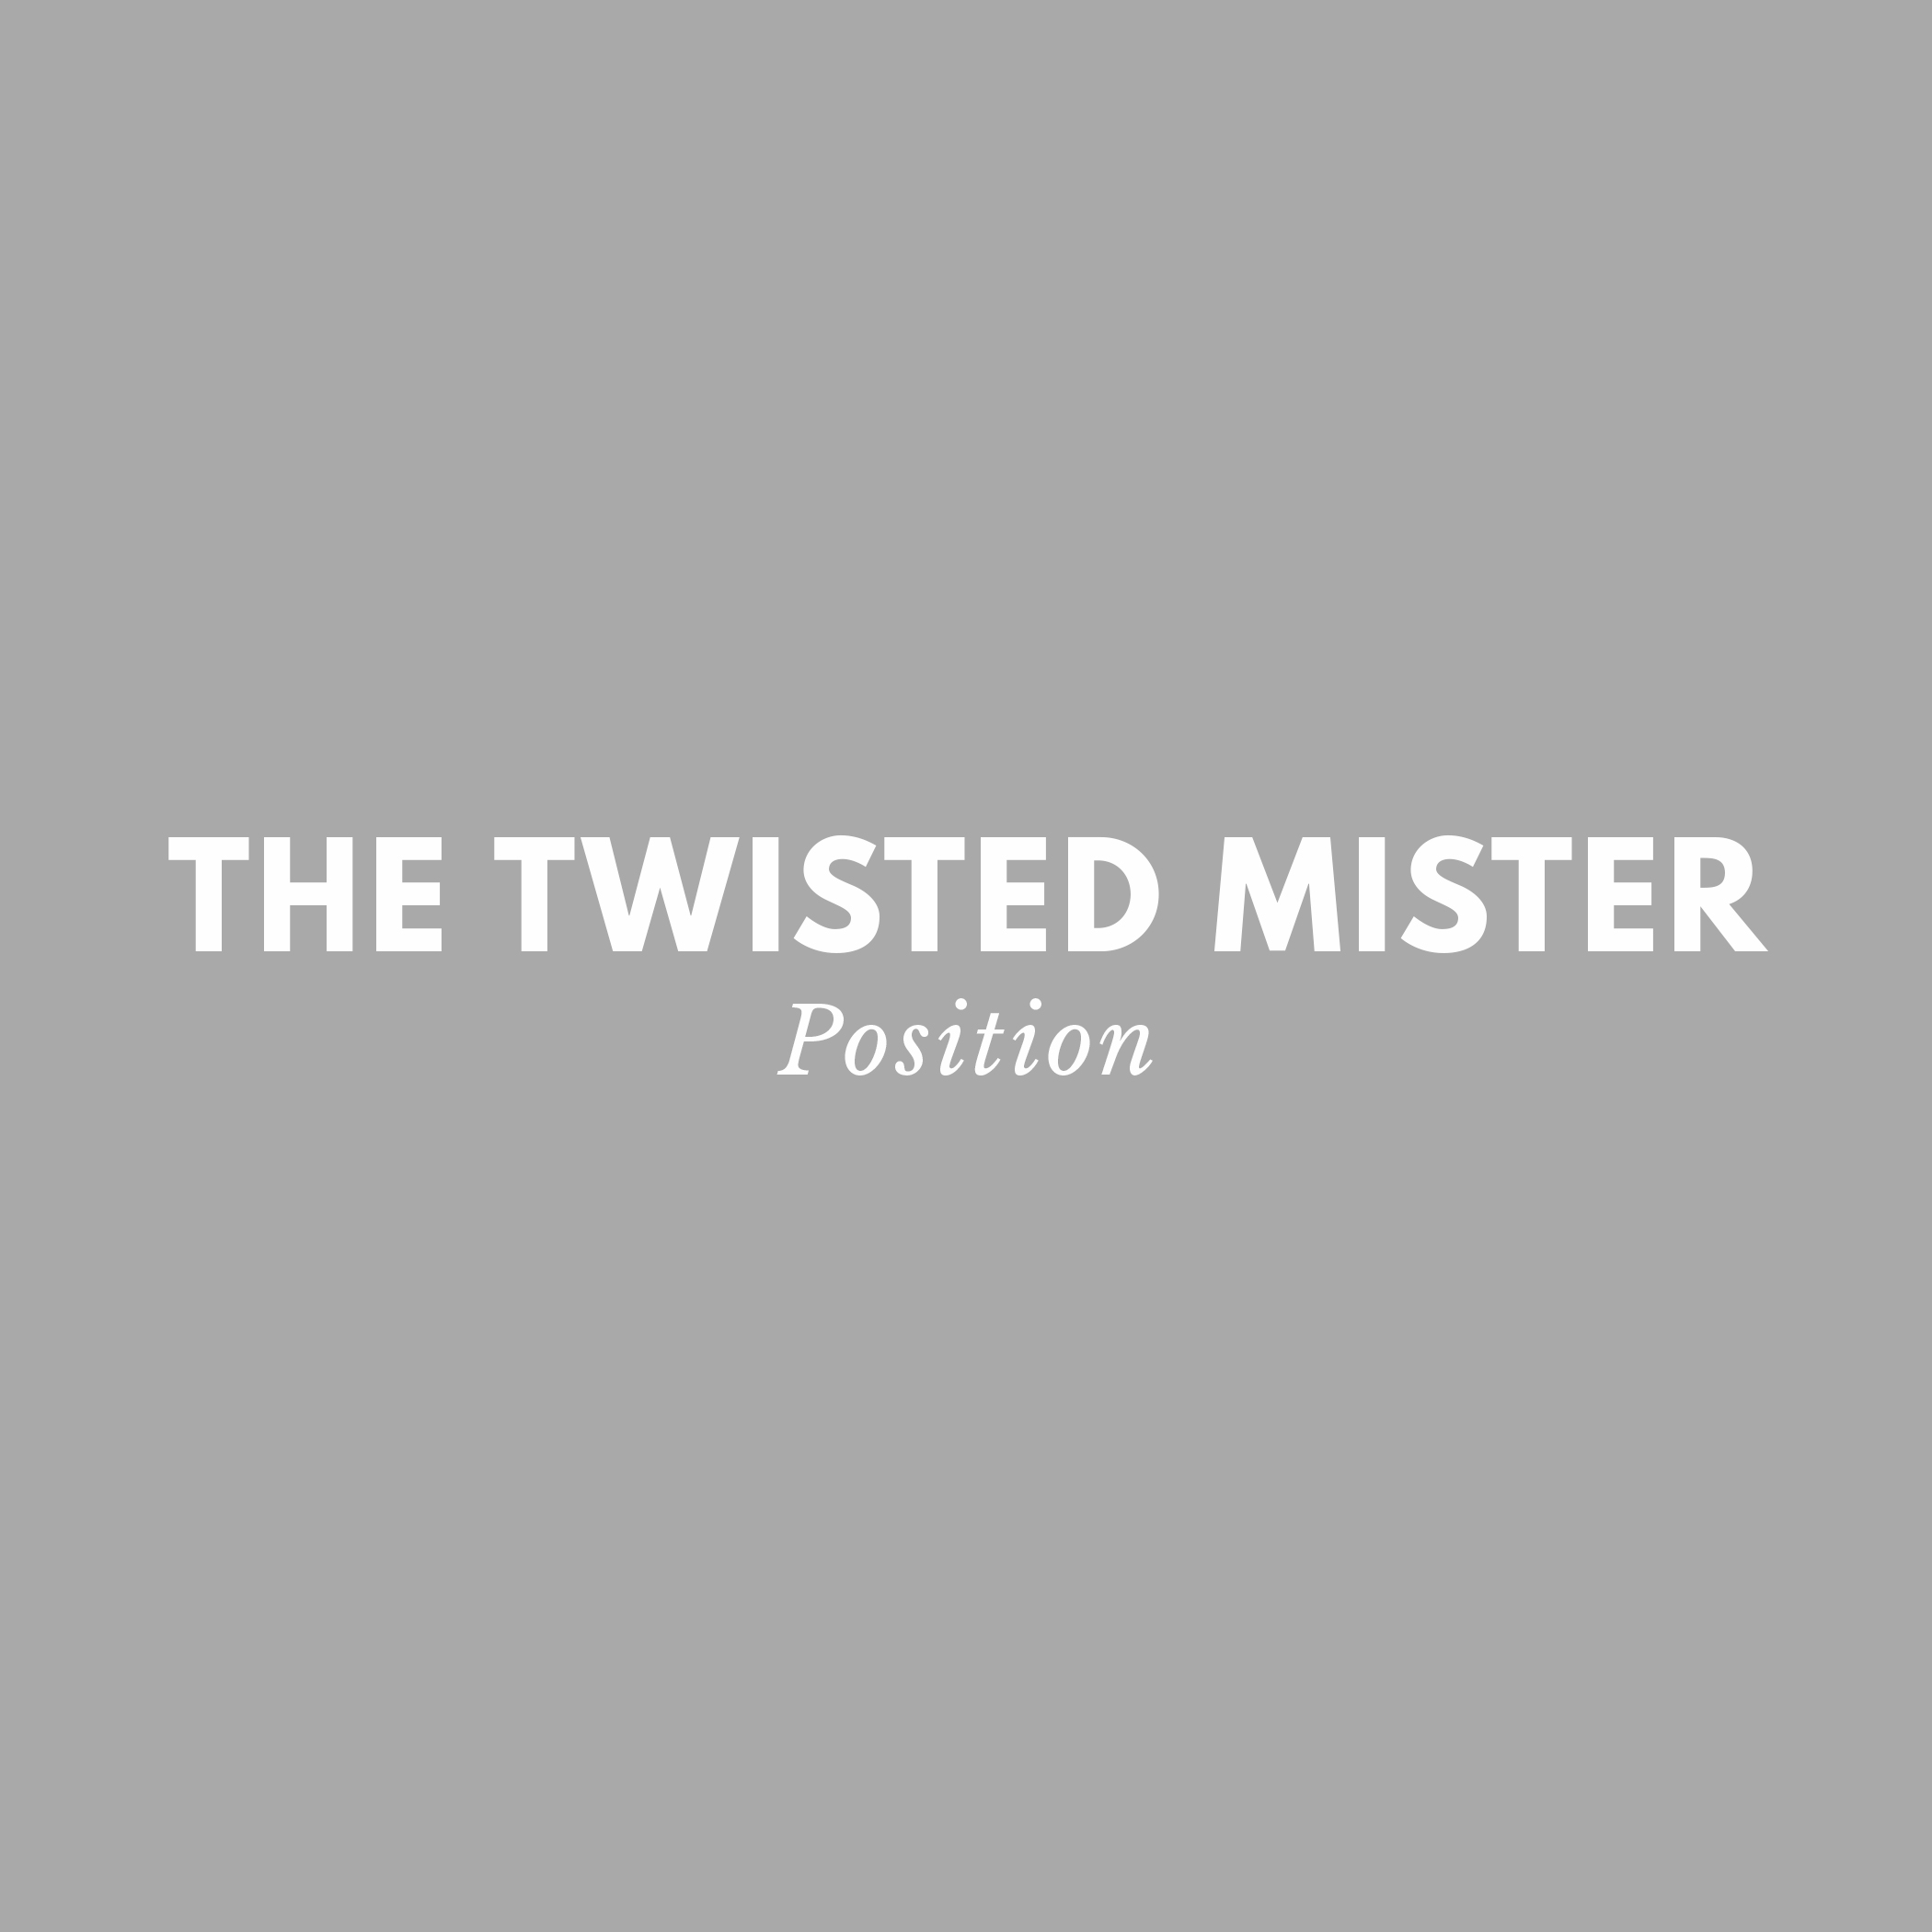 Twisted-Mister-Title.jpg